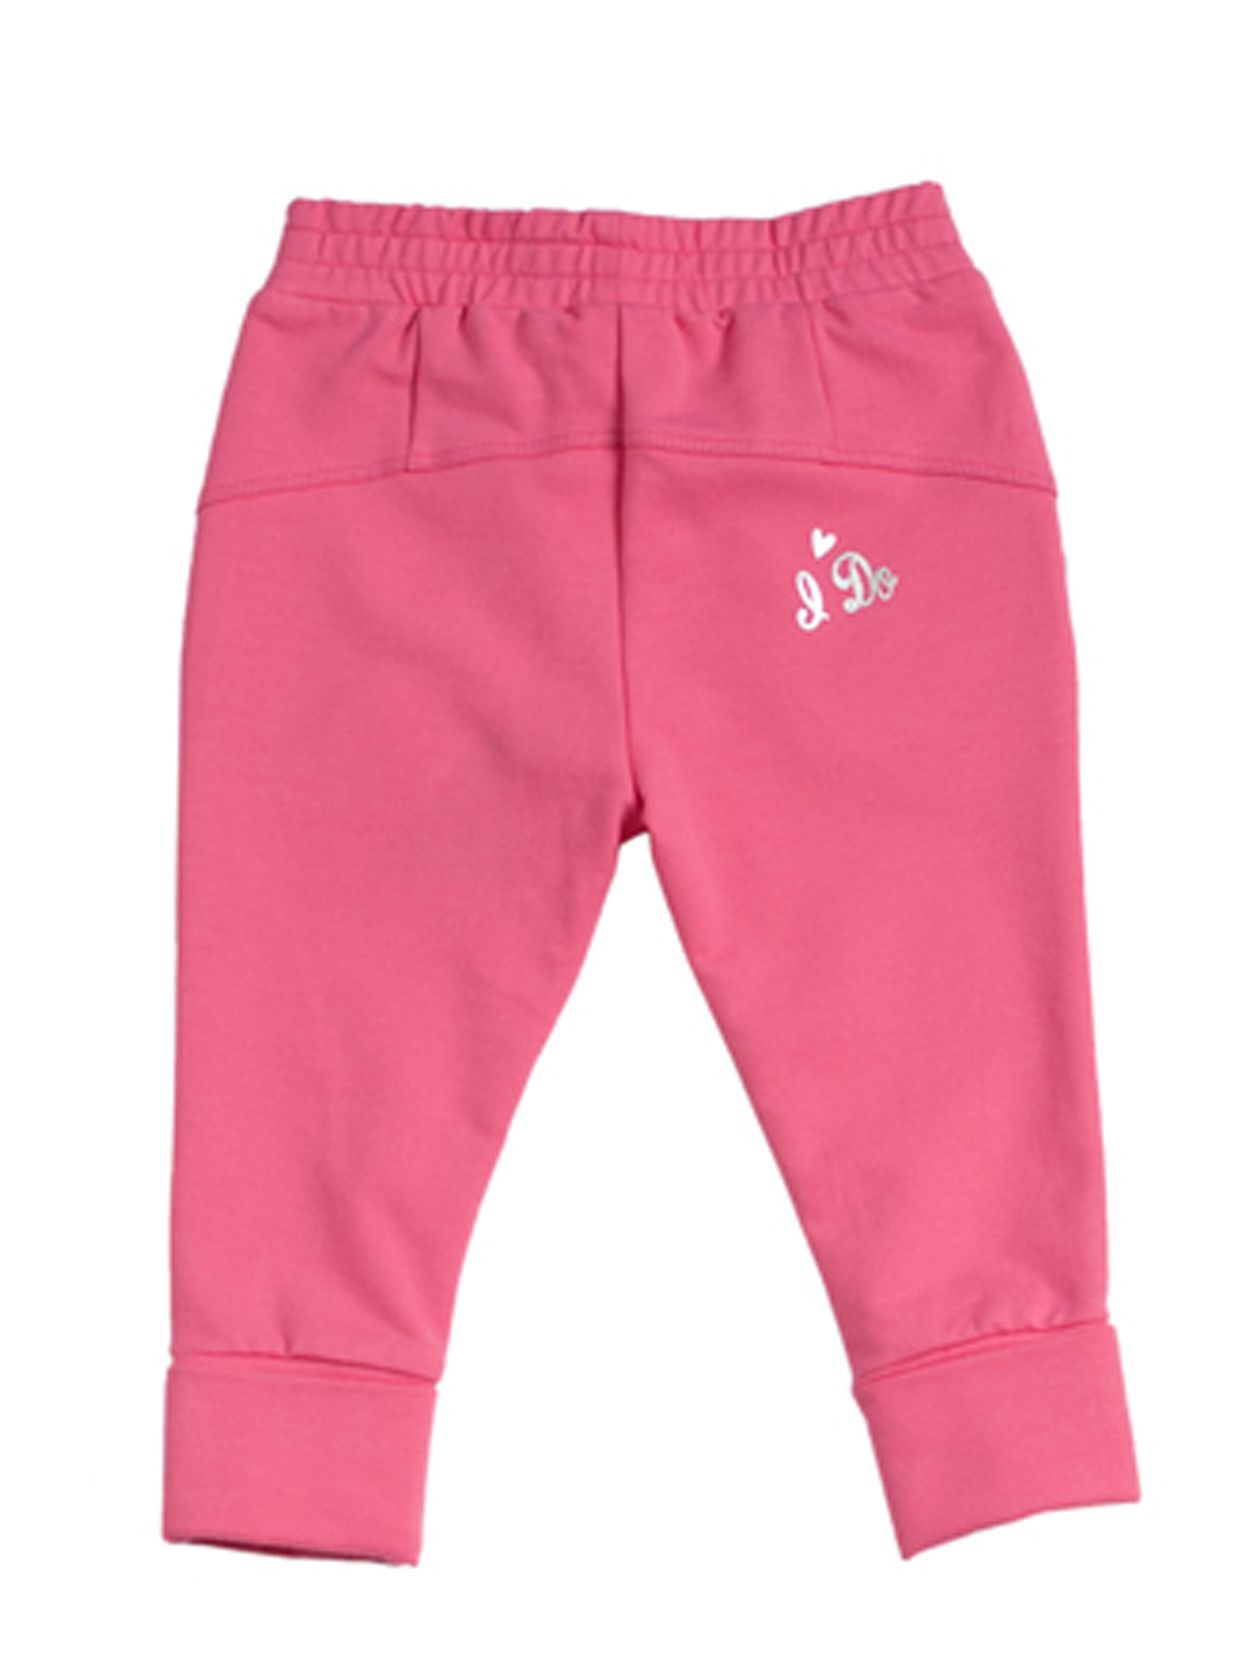 Girls stretchy fleece fuxia trouser